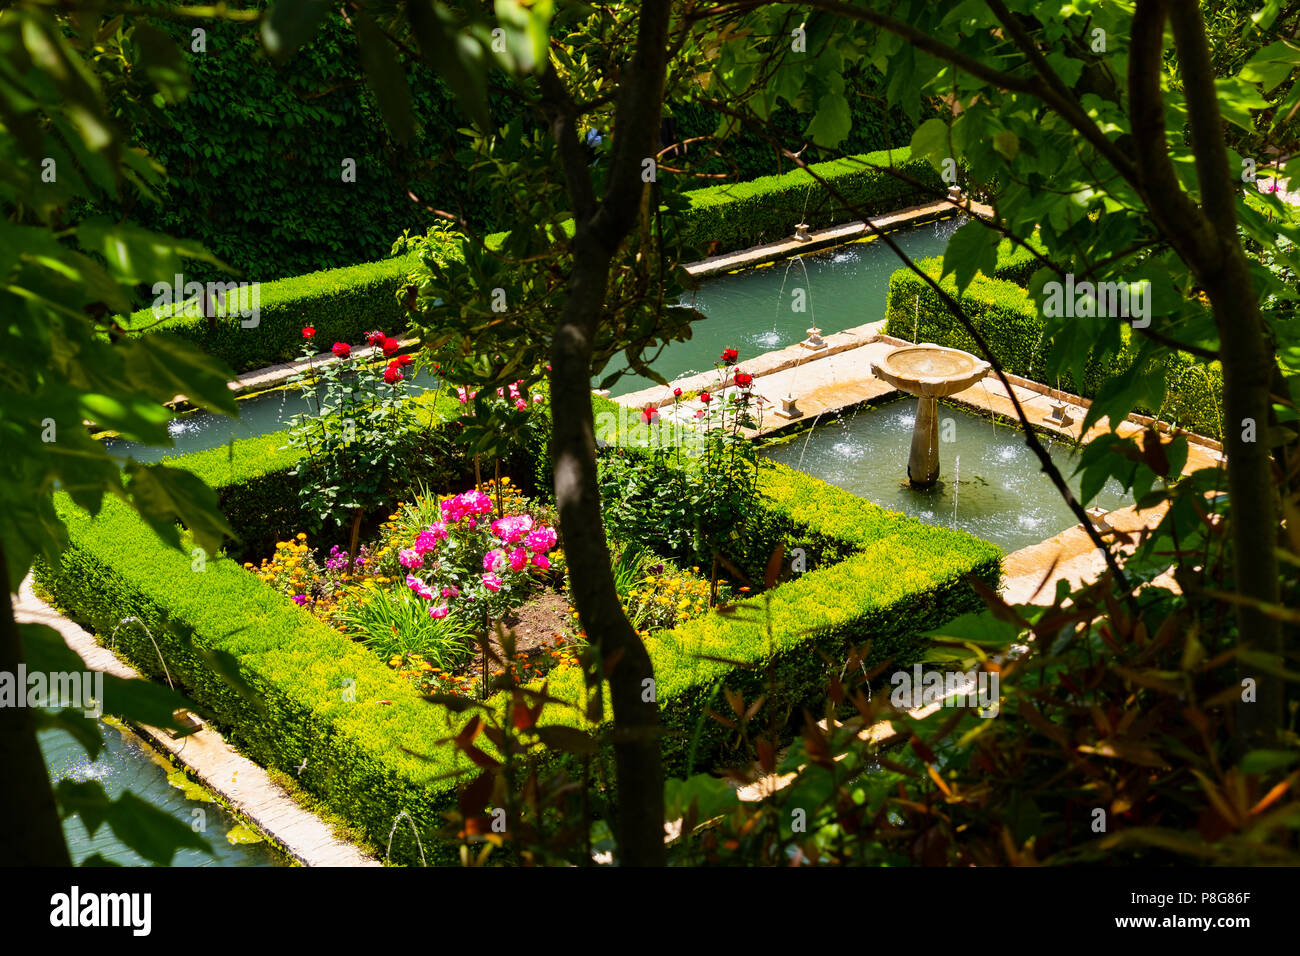 Generalife Palace gardens. Alhambra, UNESCO World Heritage Site. Granada City. Andalusia, Southern Spain Europe Stock Photo